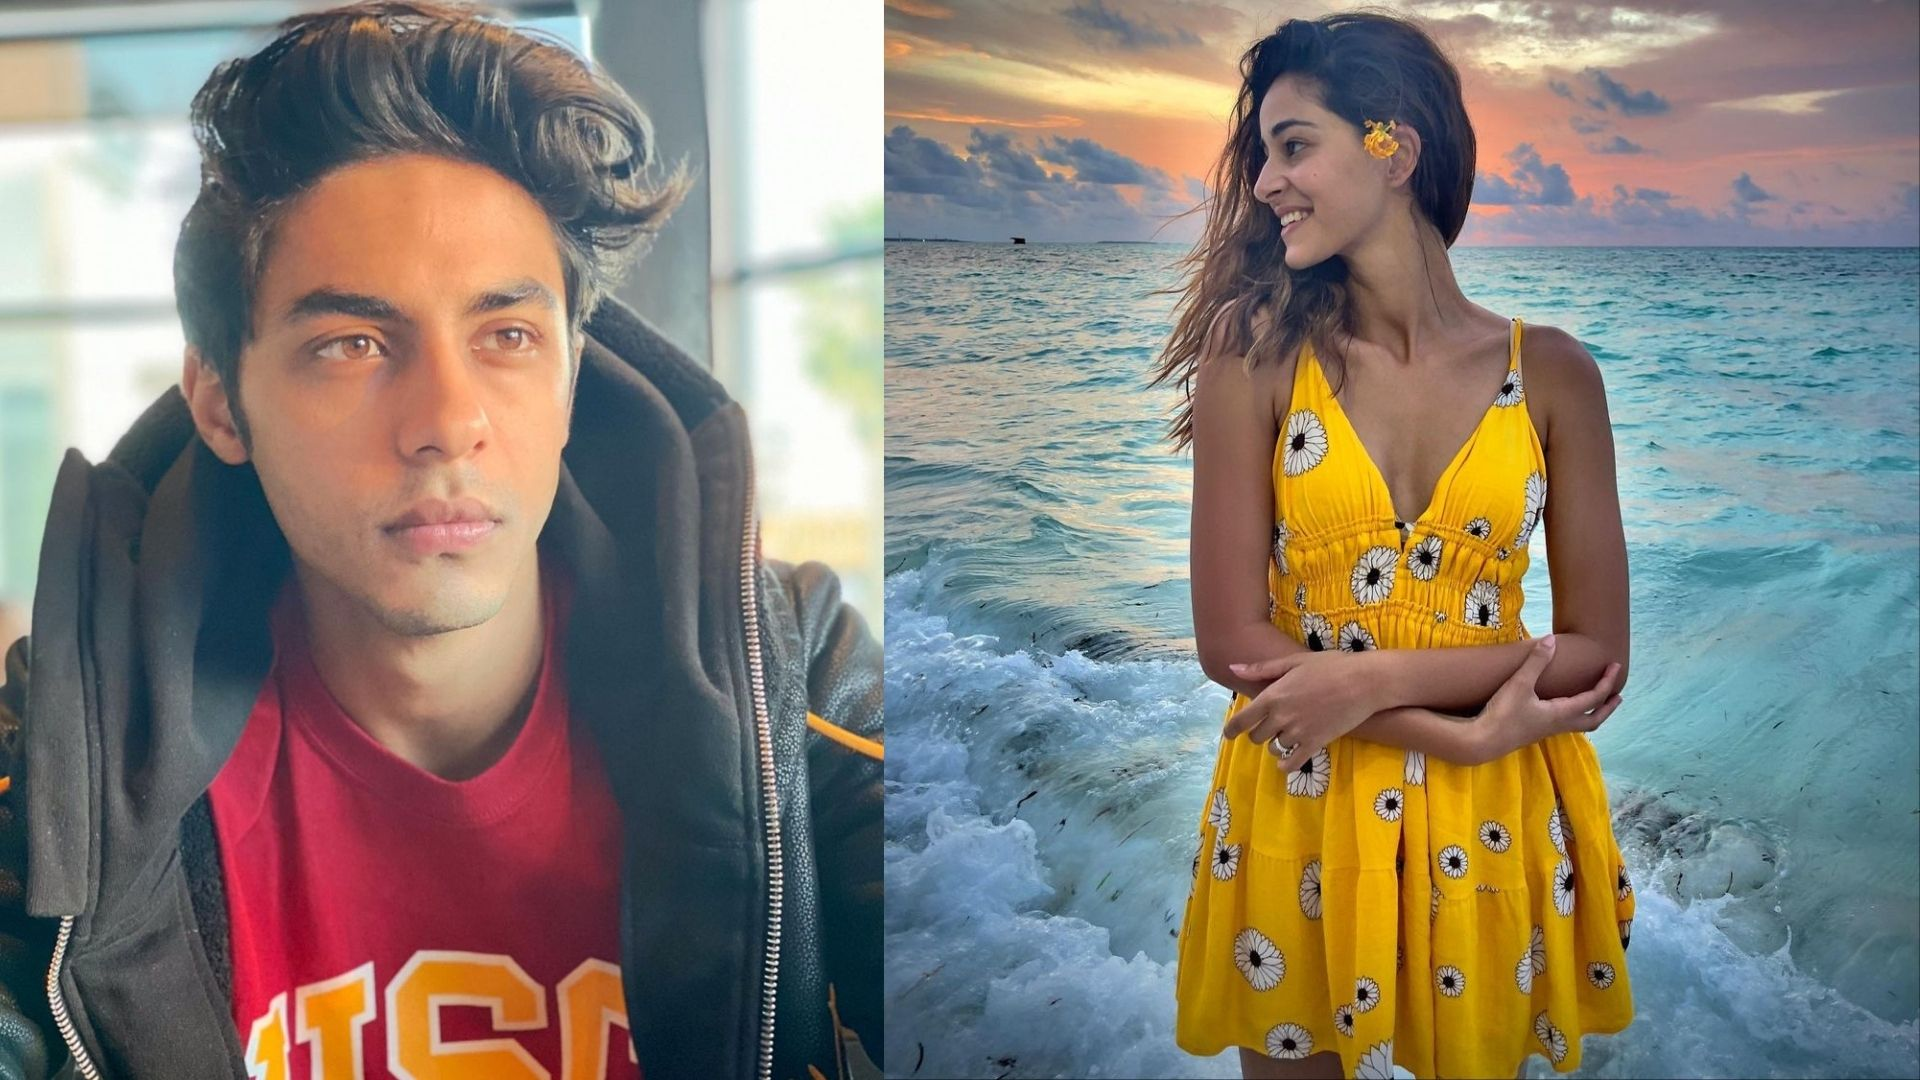 Aryan Khan Drug Case: NCB Questions Ananya Panday For Suspicious Financial Transactions – Reports